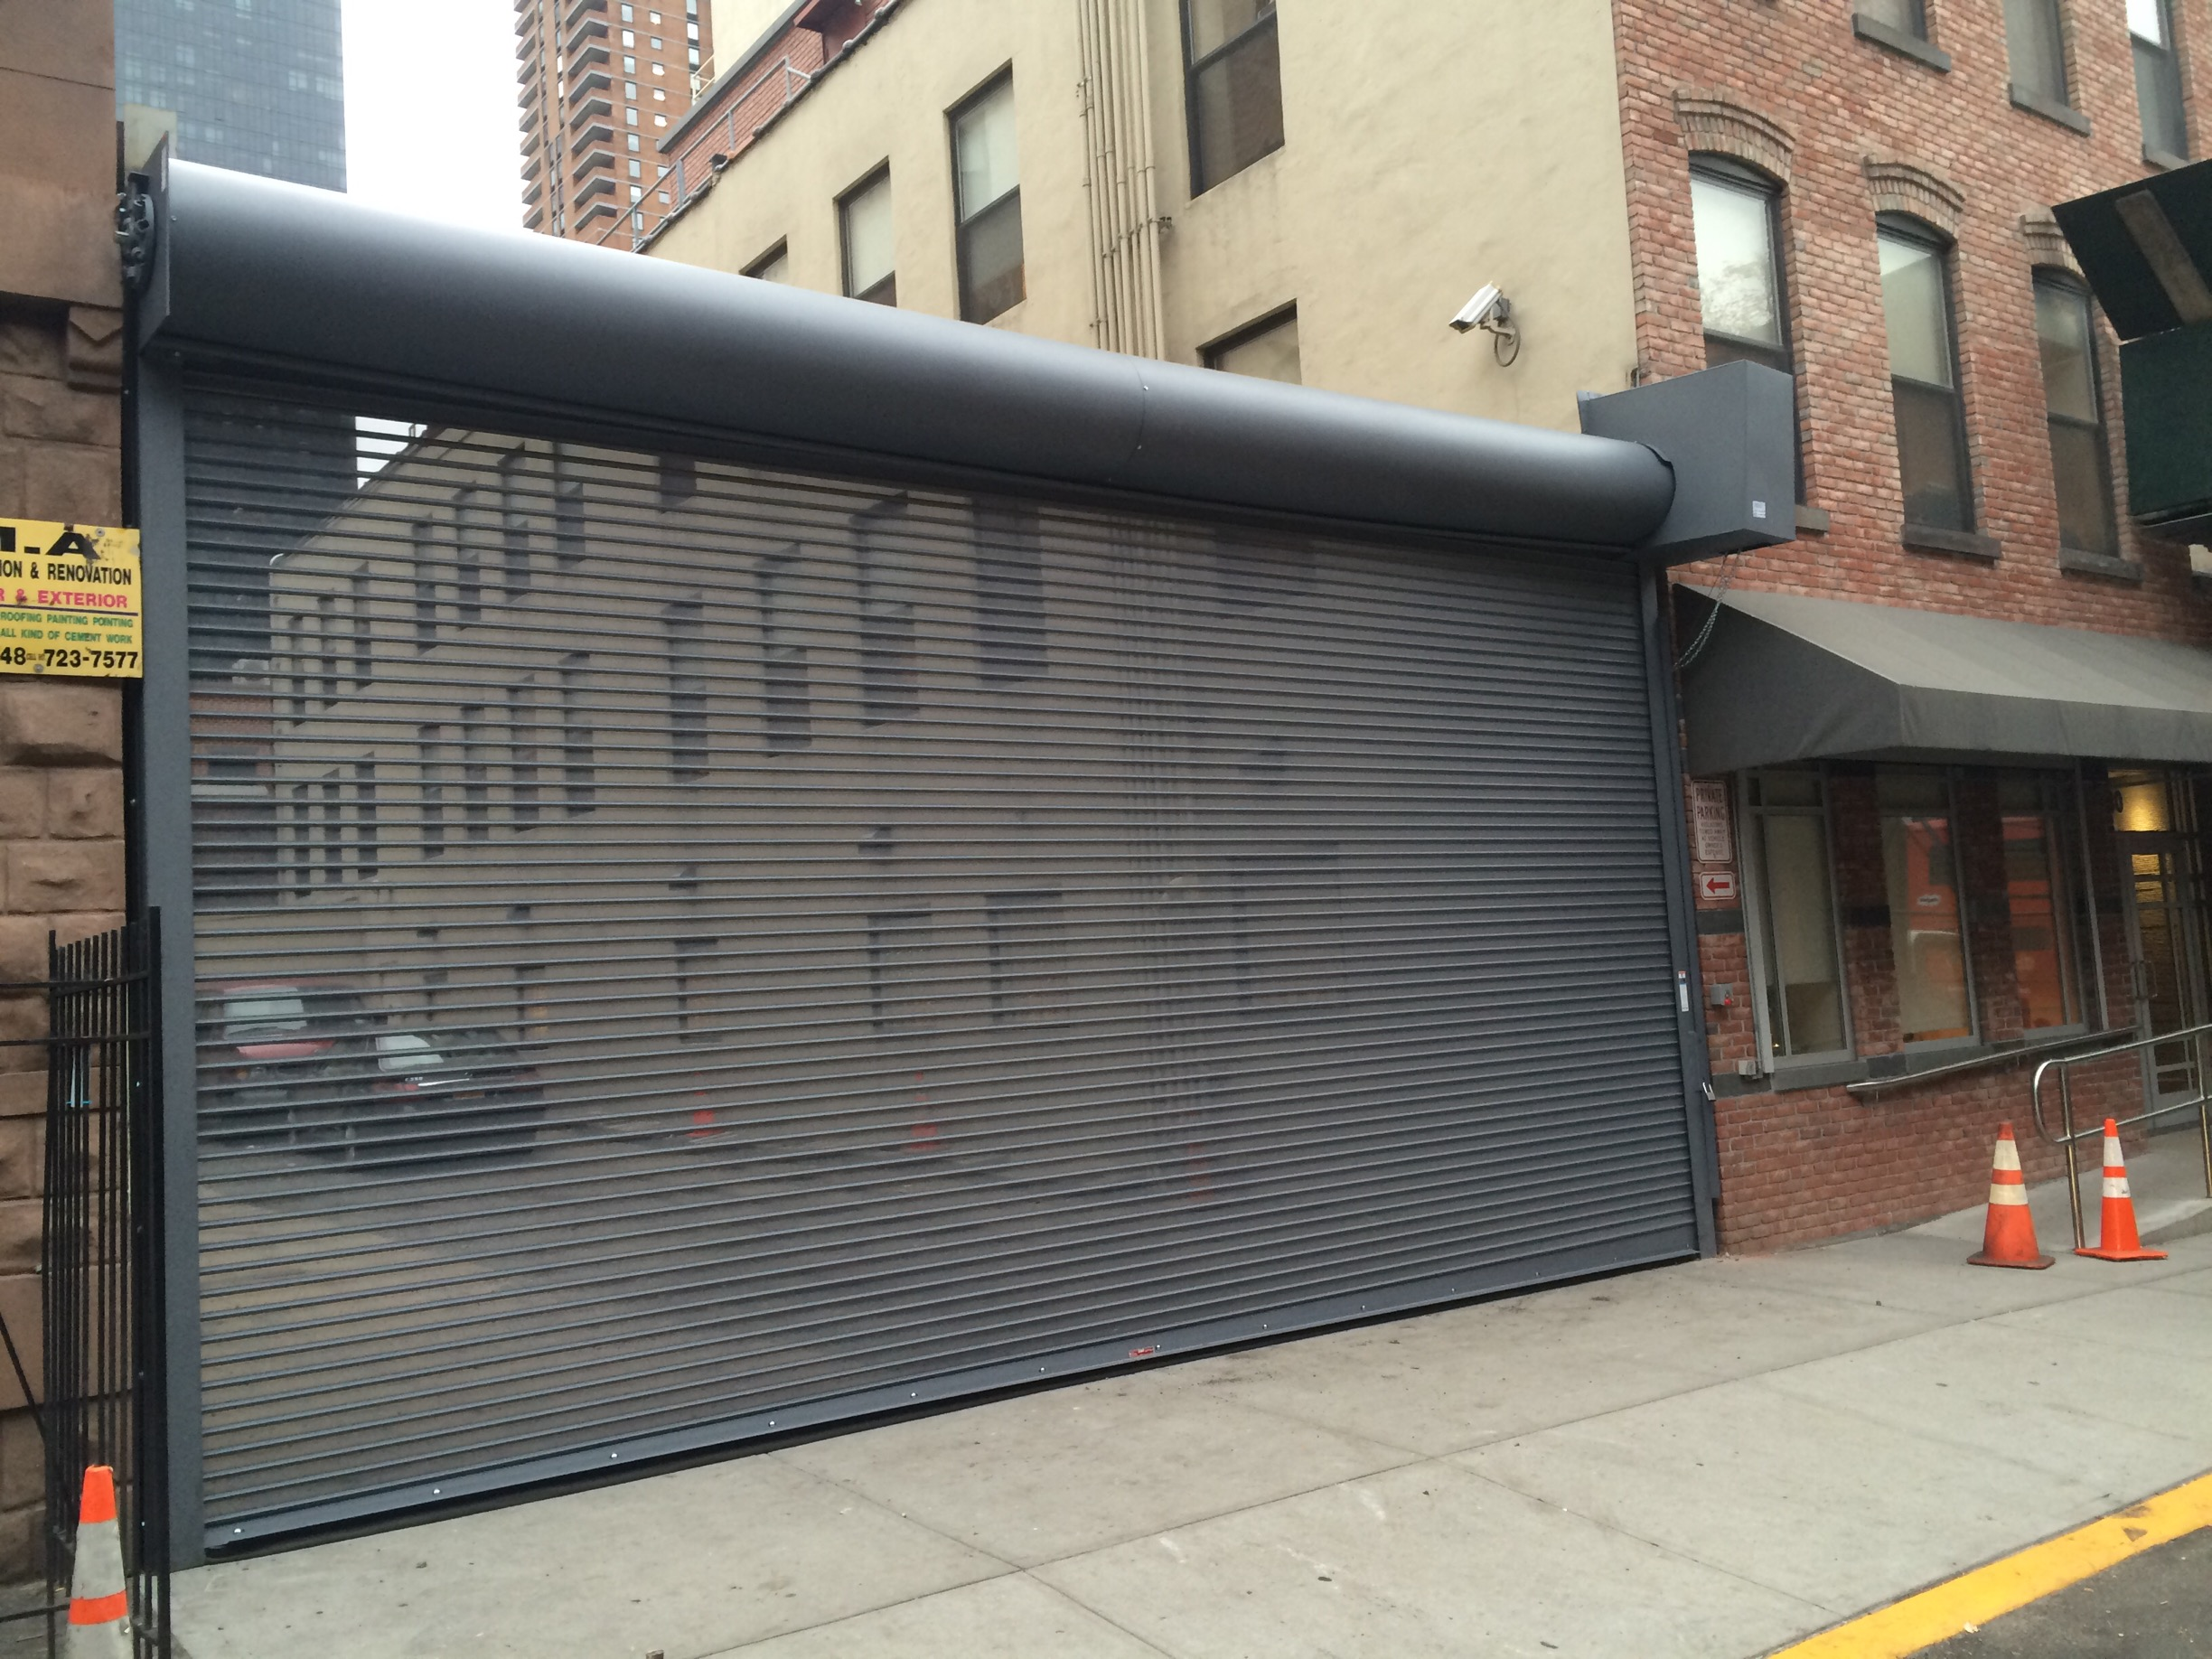 Repair Mesh Perforated Punched Hole Open Air Visibility Rolling Door  Shutter New York City New Jersey